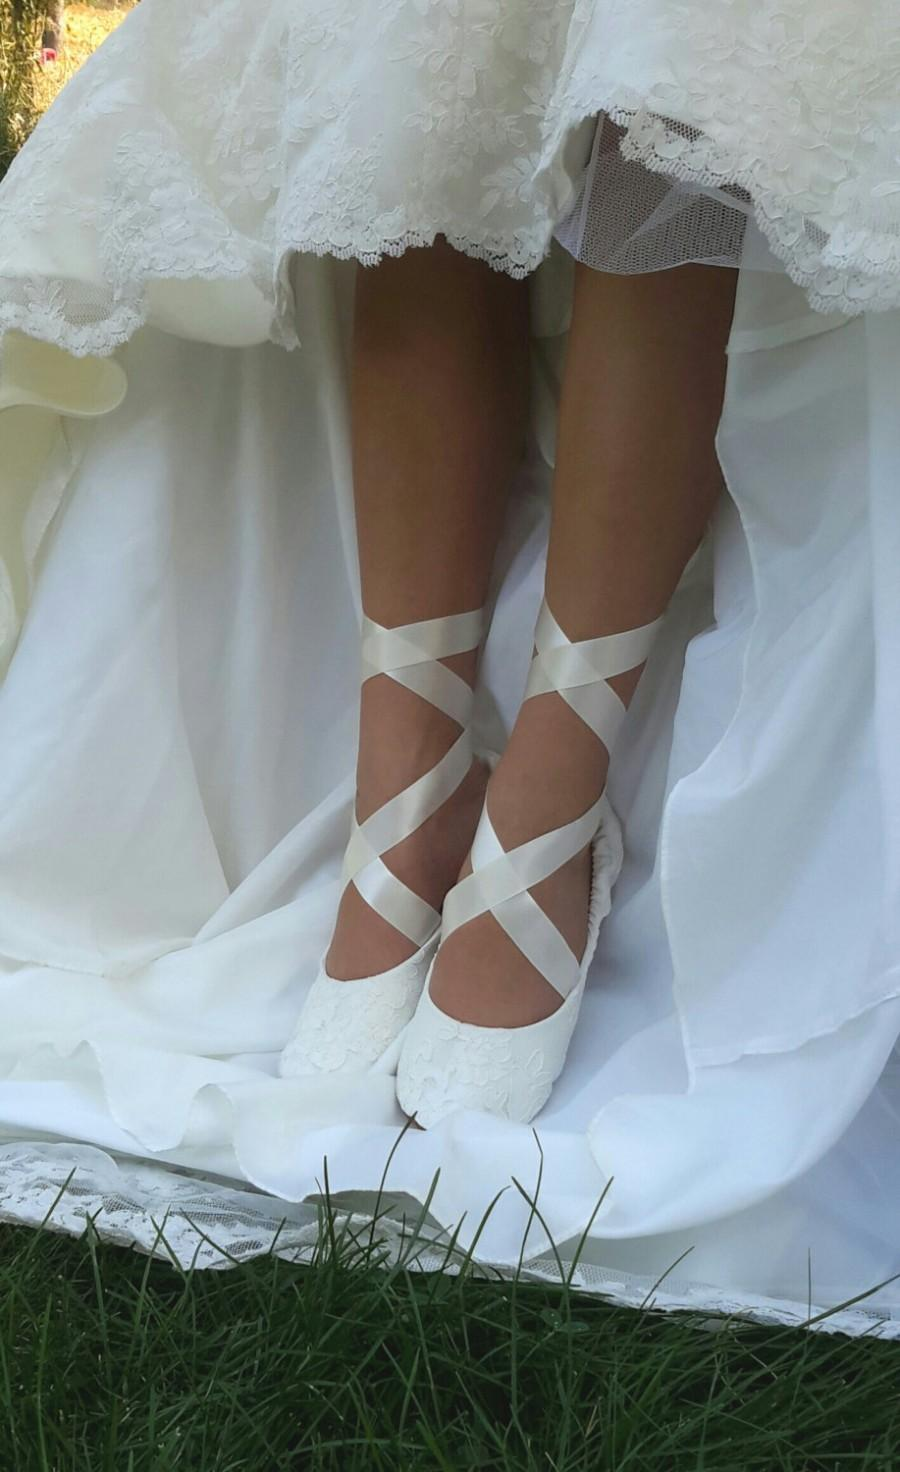 Ballerina flats for wedding